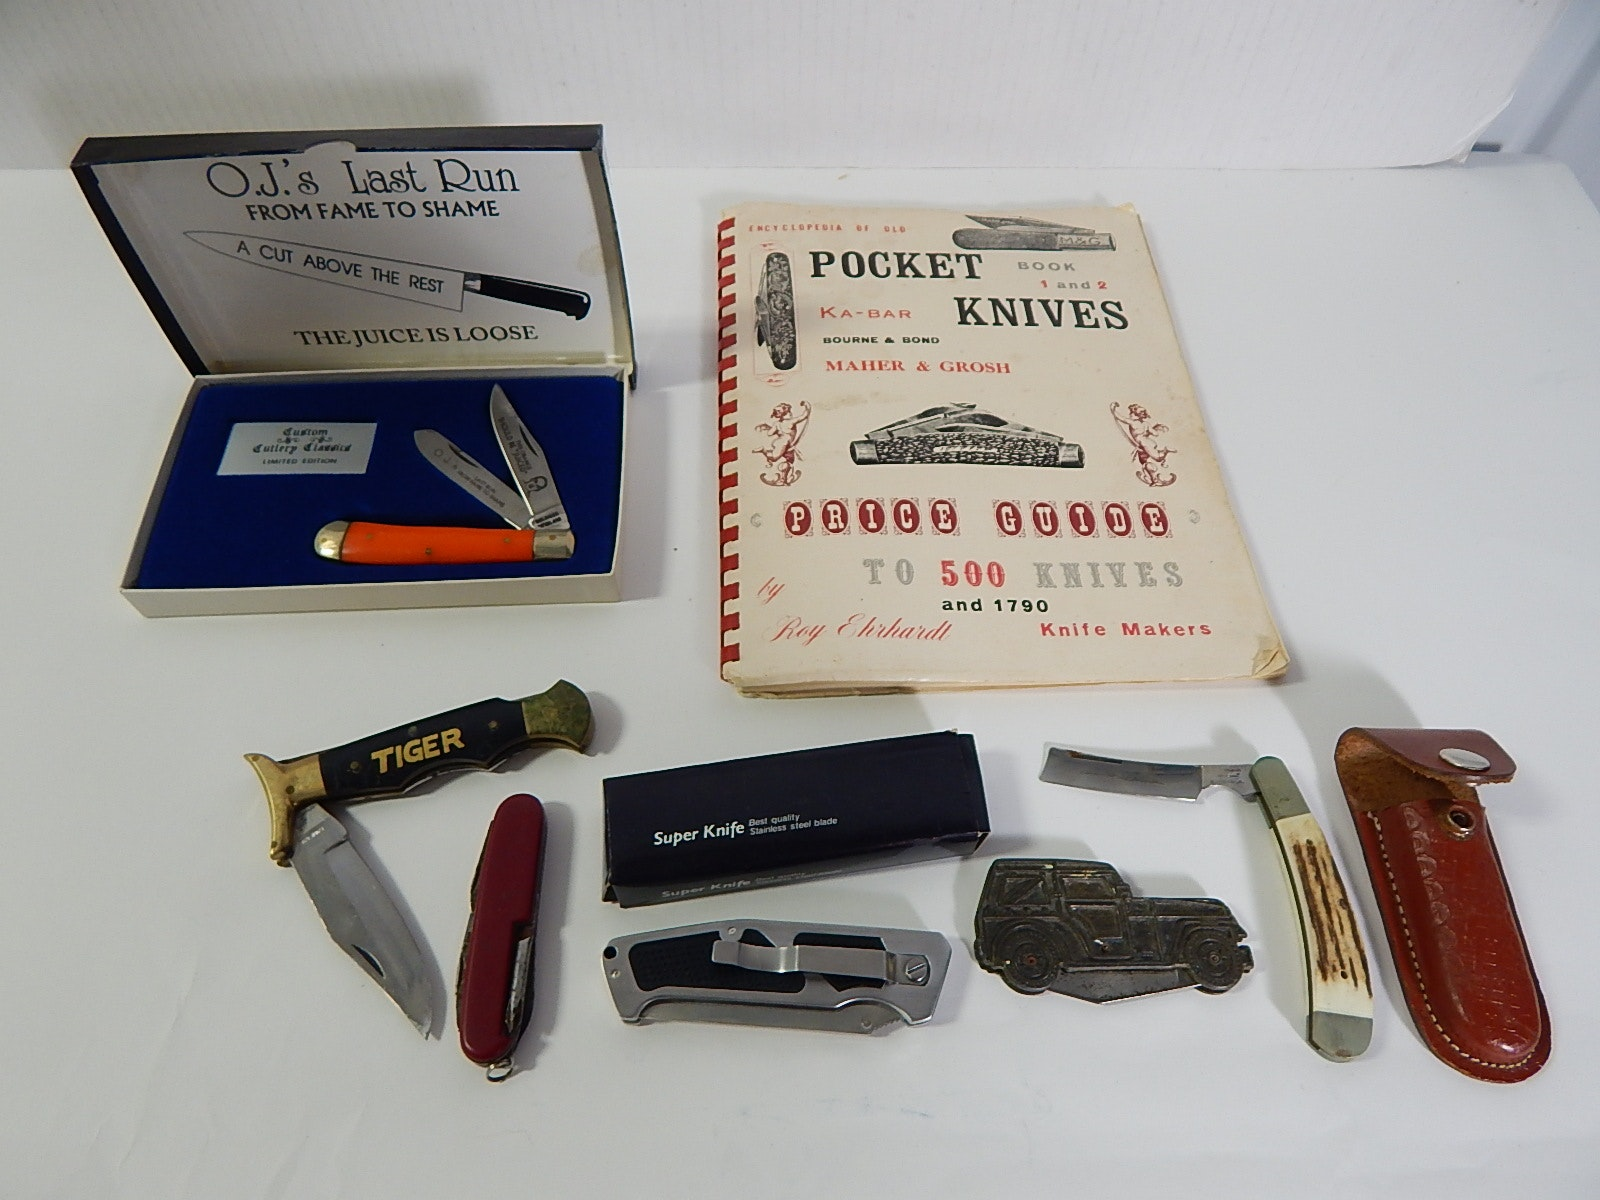 Assorted Pocket Knives and 1974 Pocket Knives Reference Booklet